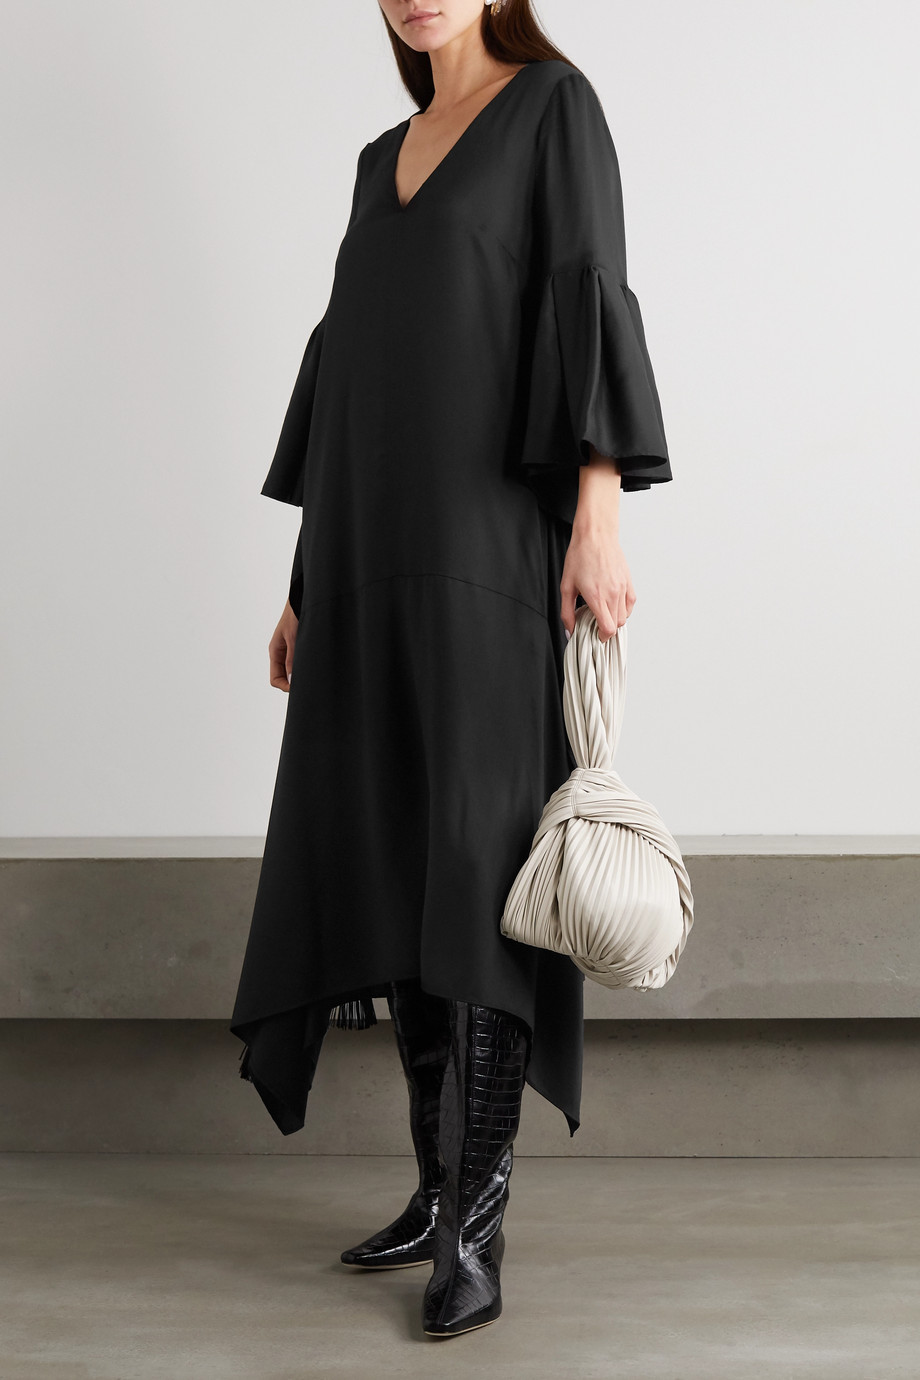 MOTHER OF PEARL + NET SUSTAIN Melody fringed draped Lyocell midi dress